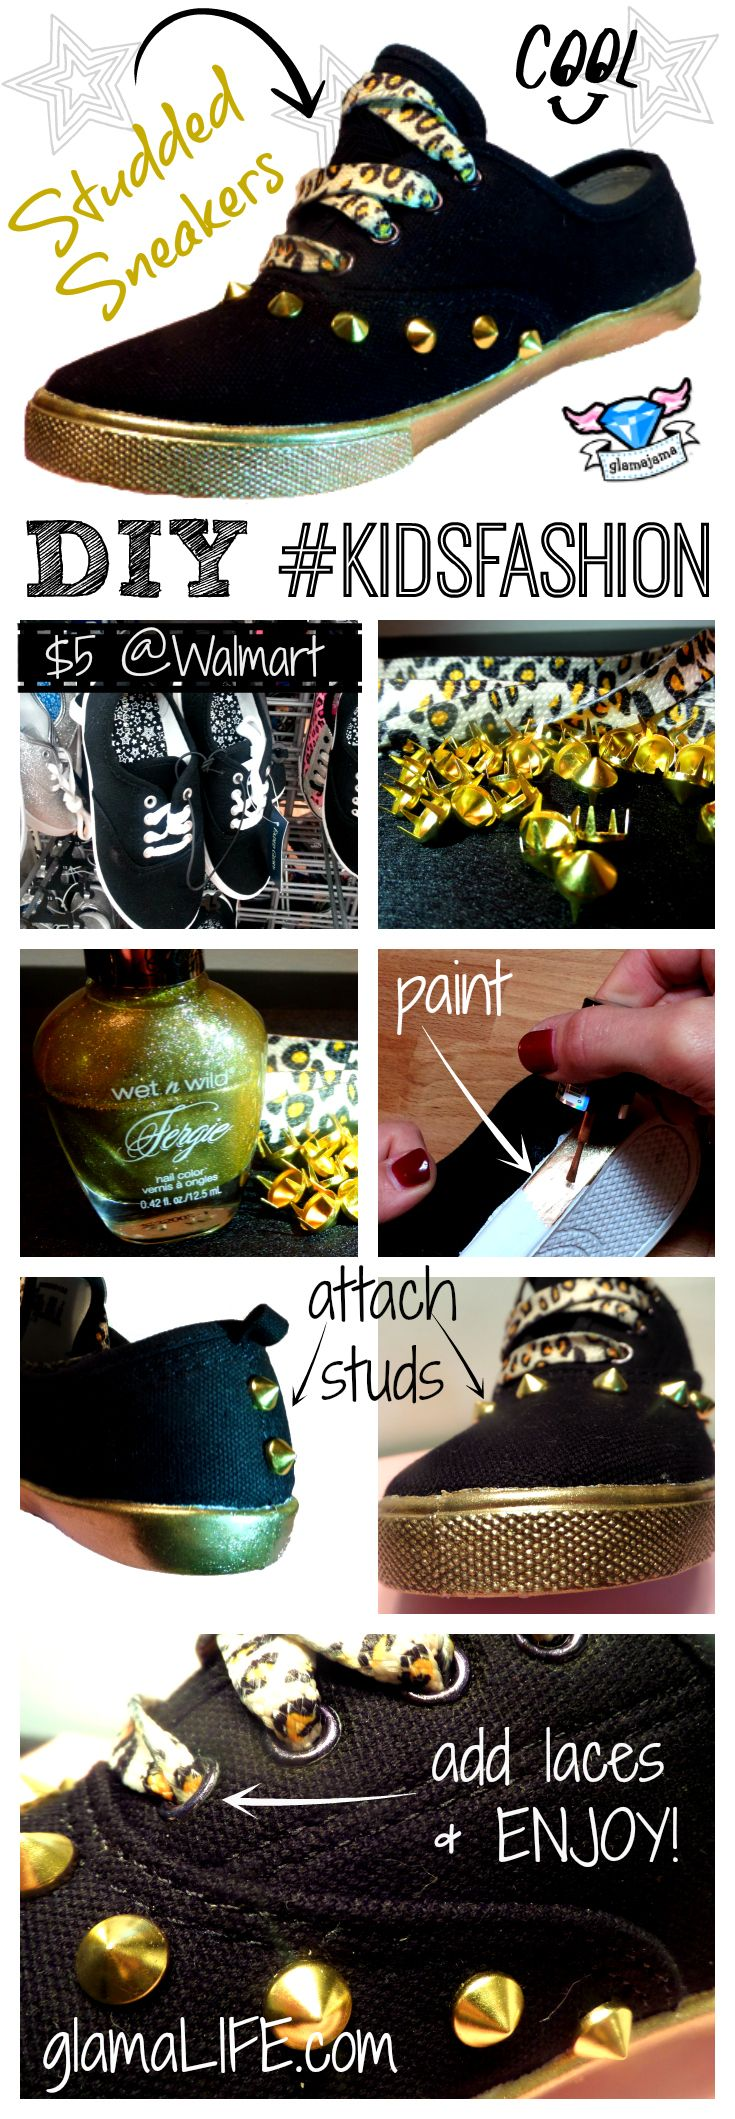 90 besten DIY Shoes/ideas Bilder auf Pinterest | Bastelei ...